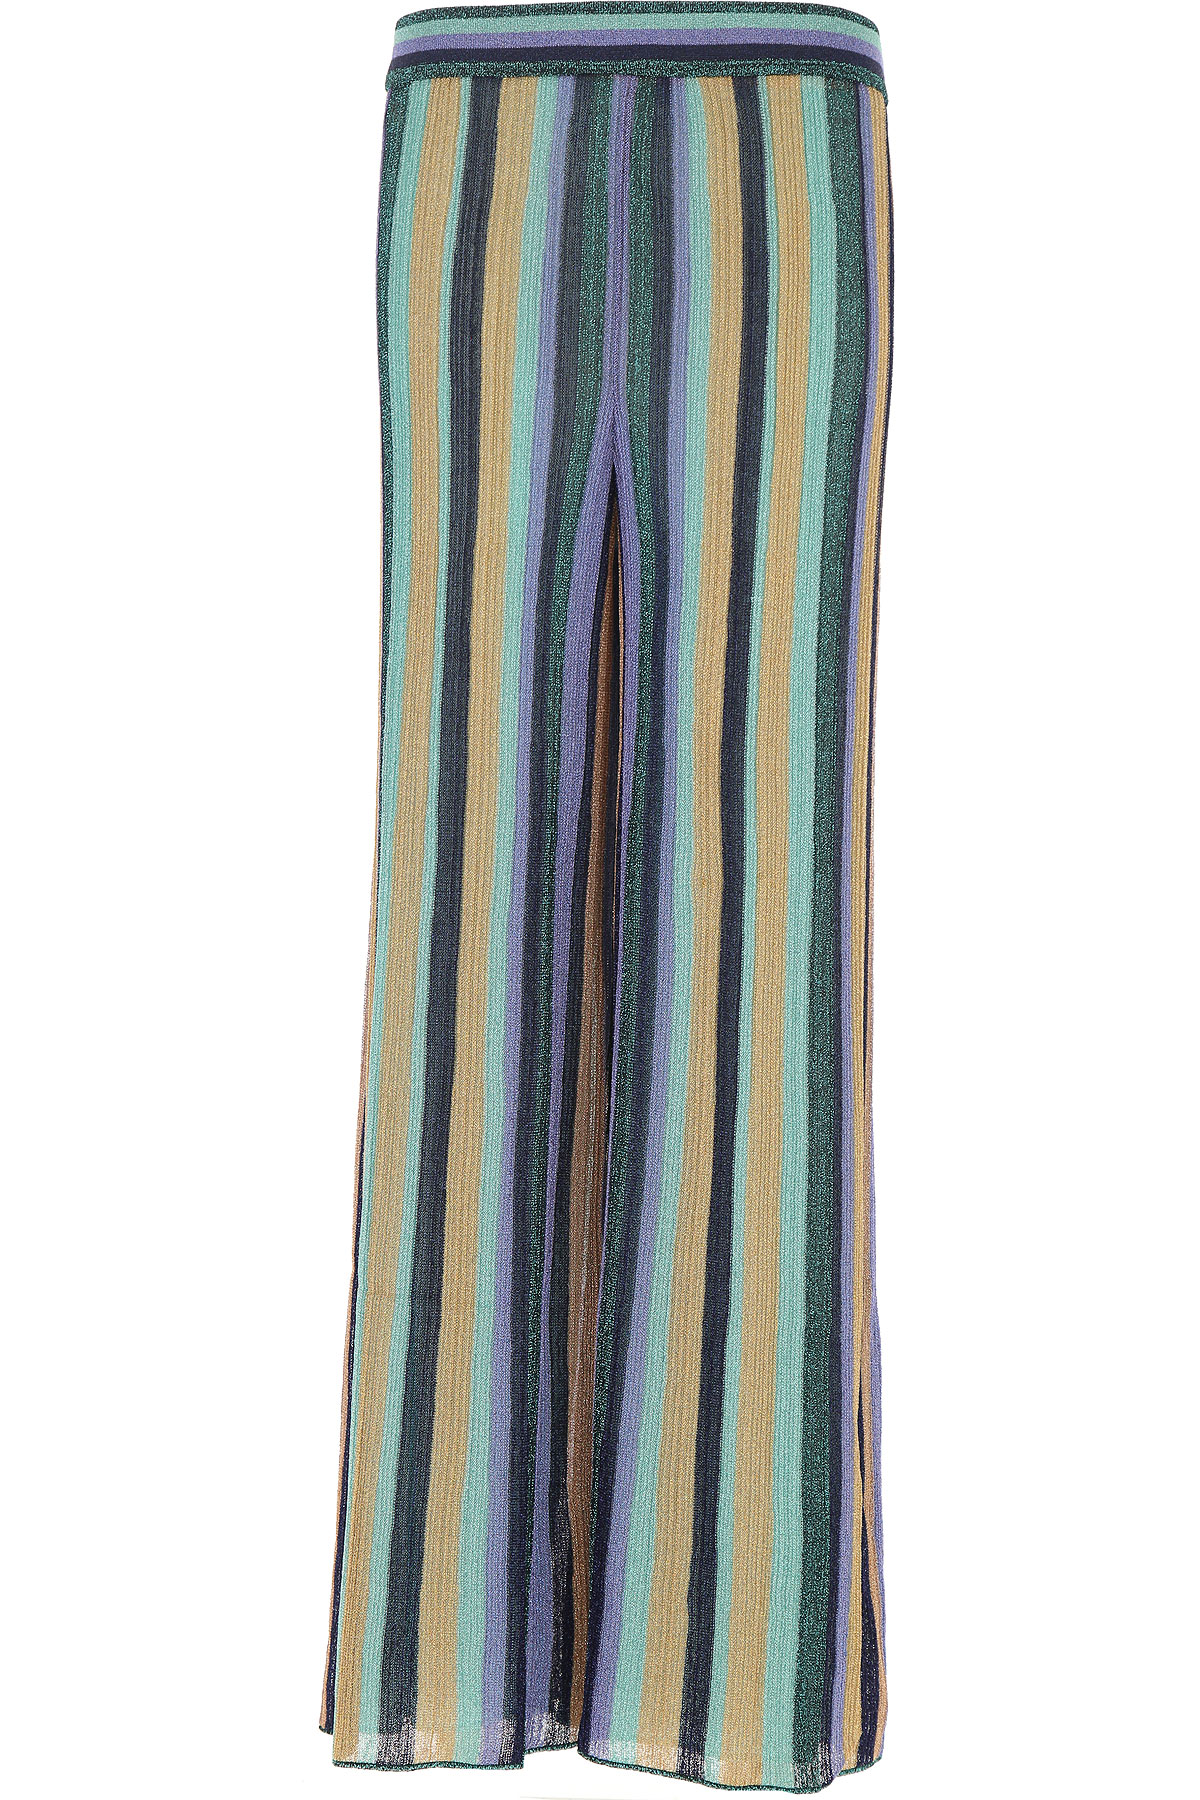 Missoni Pants for Women On Sale in Outlet, Multicolor, Viscose, 2019, 26 28